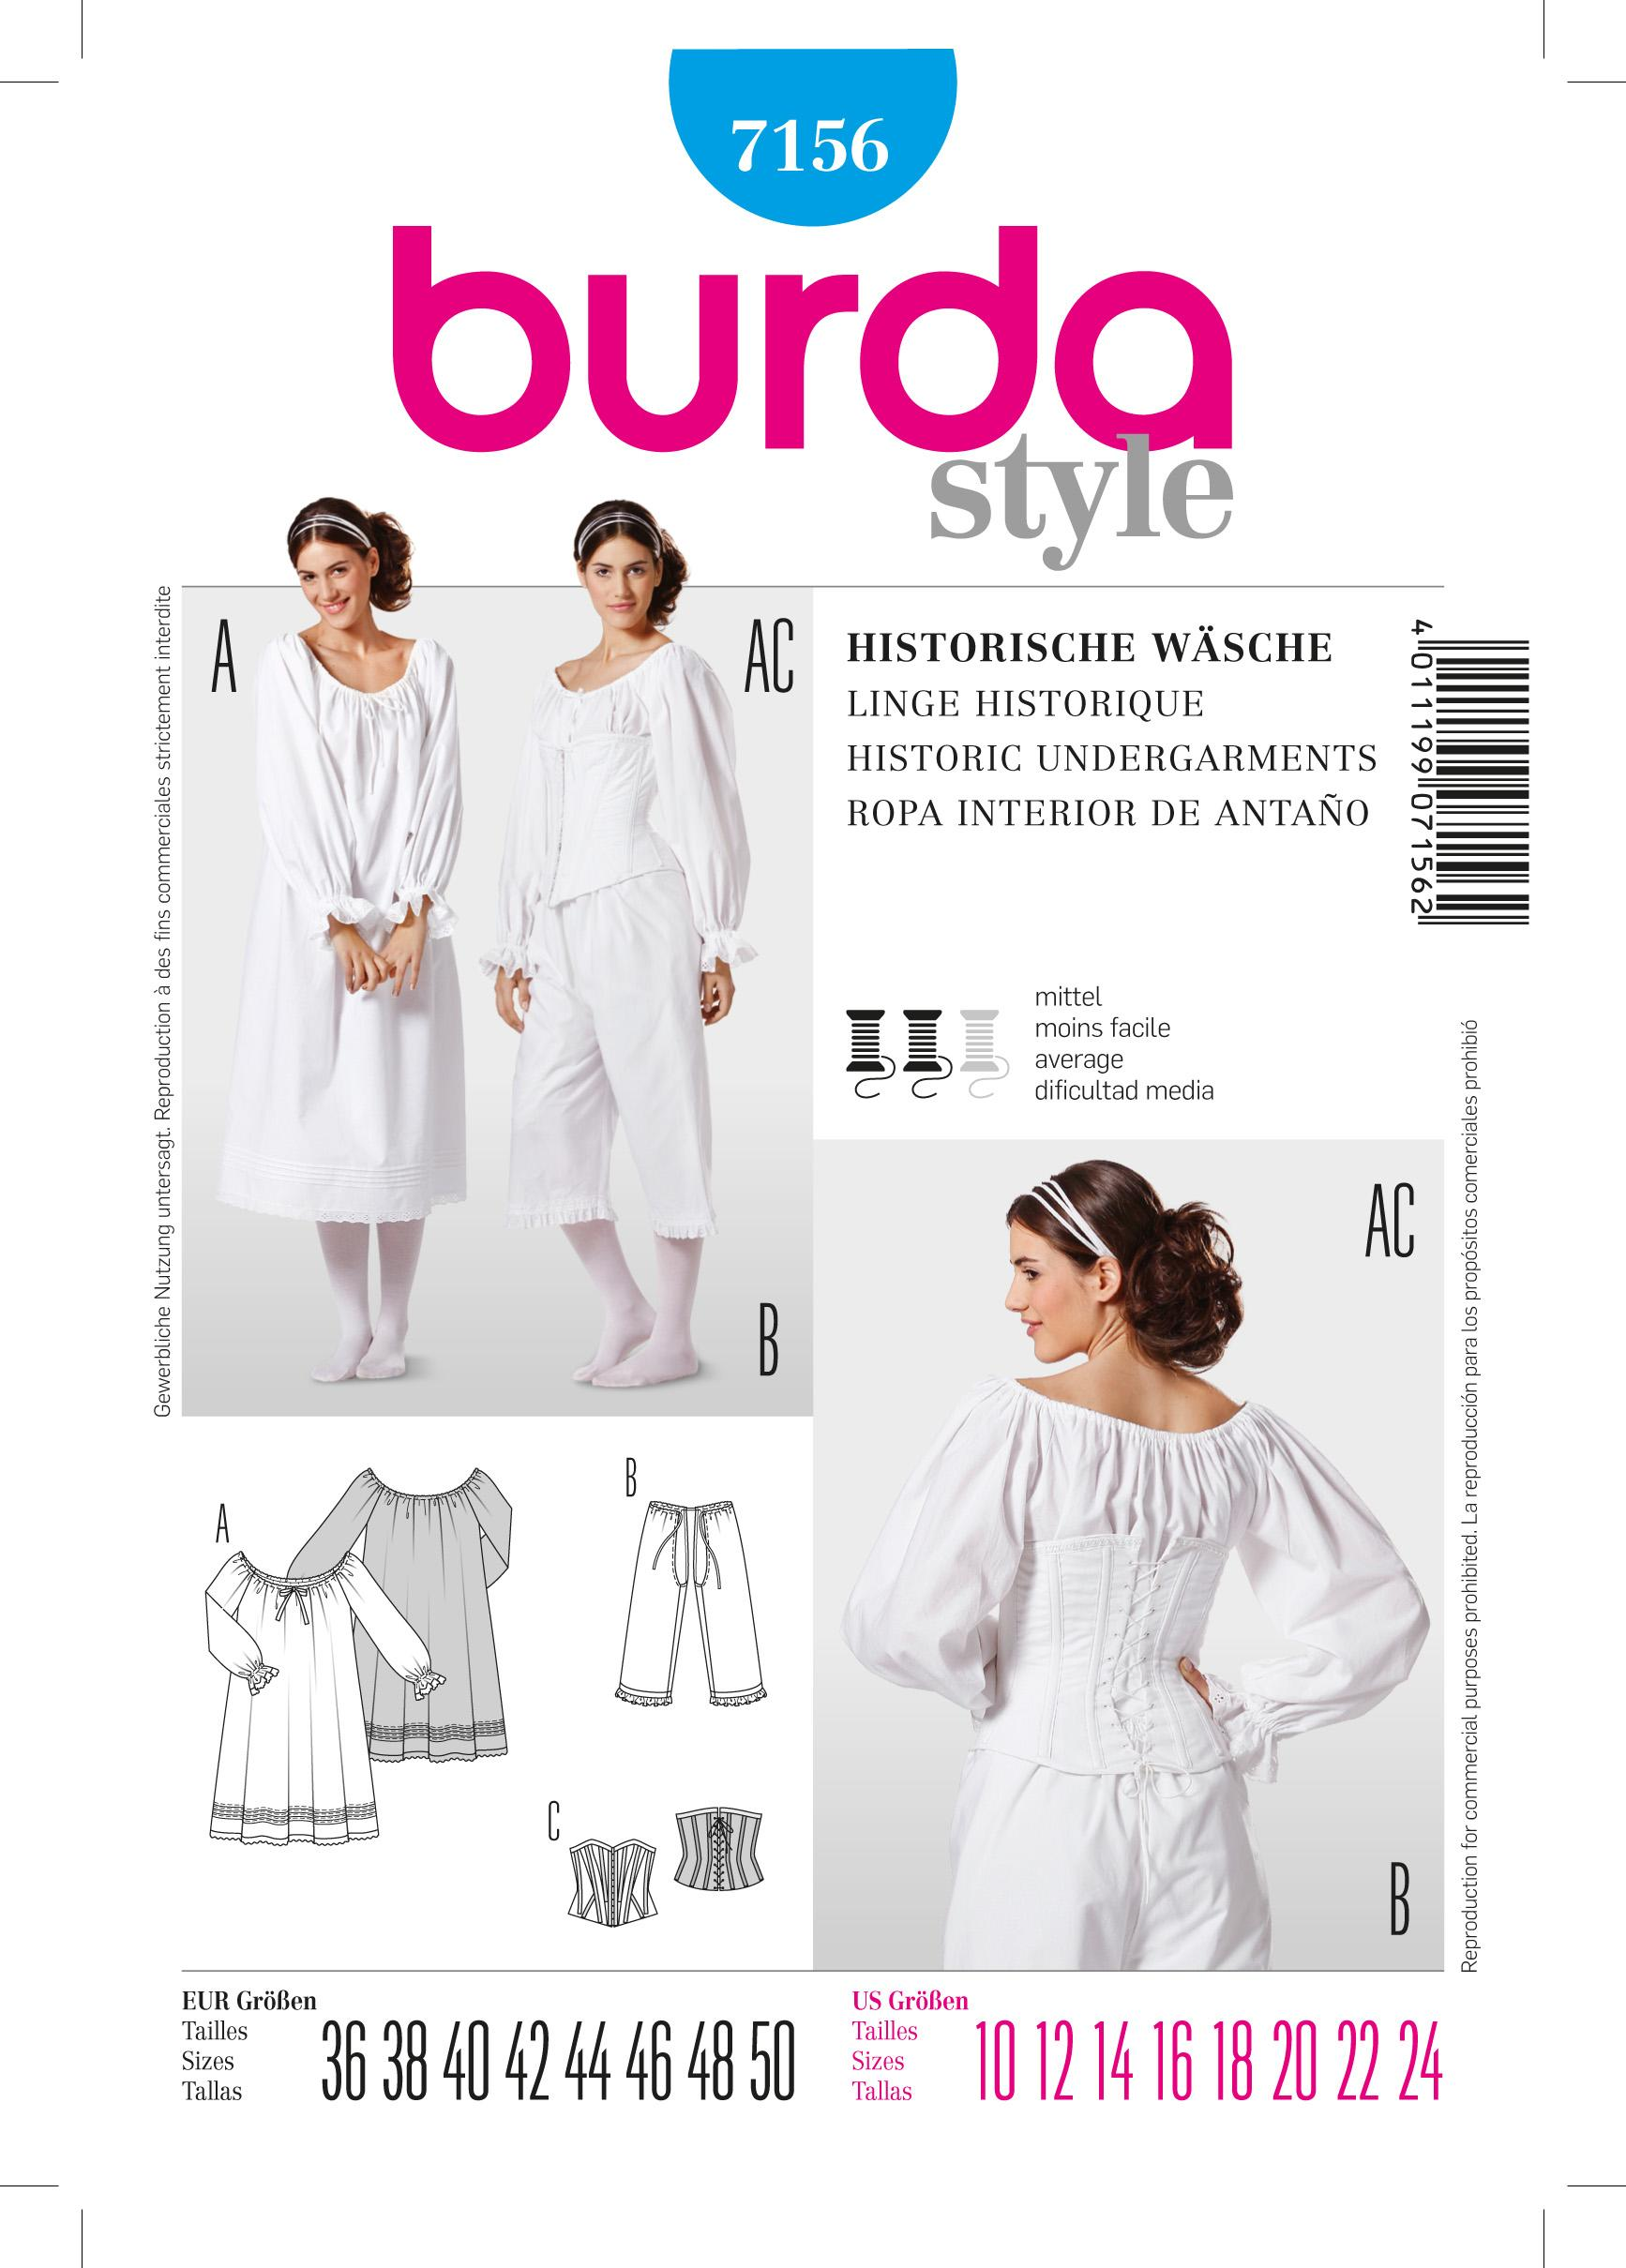 Burda B7156 Burda Historic Undergarments